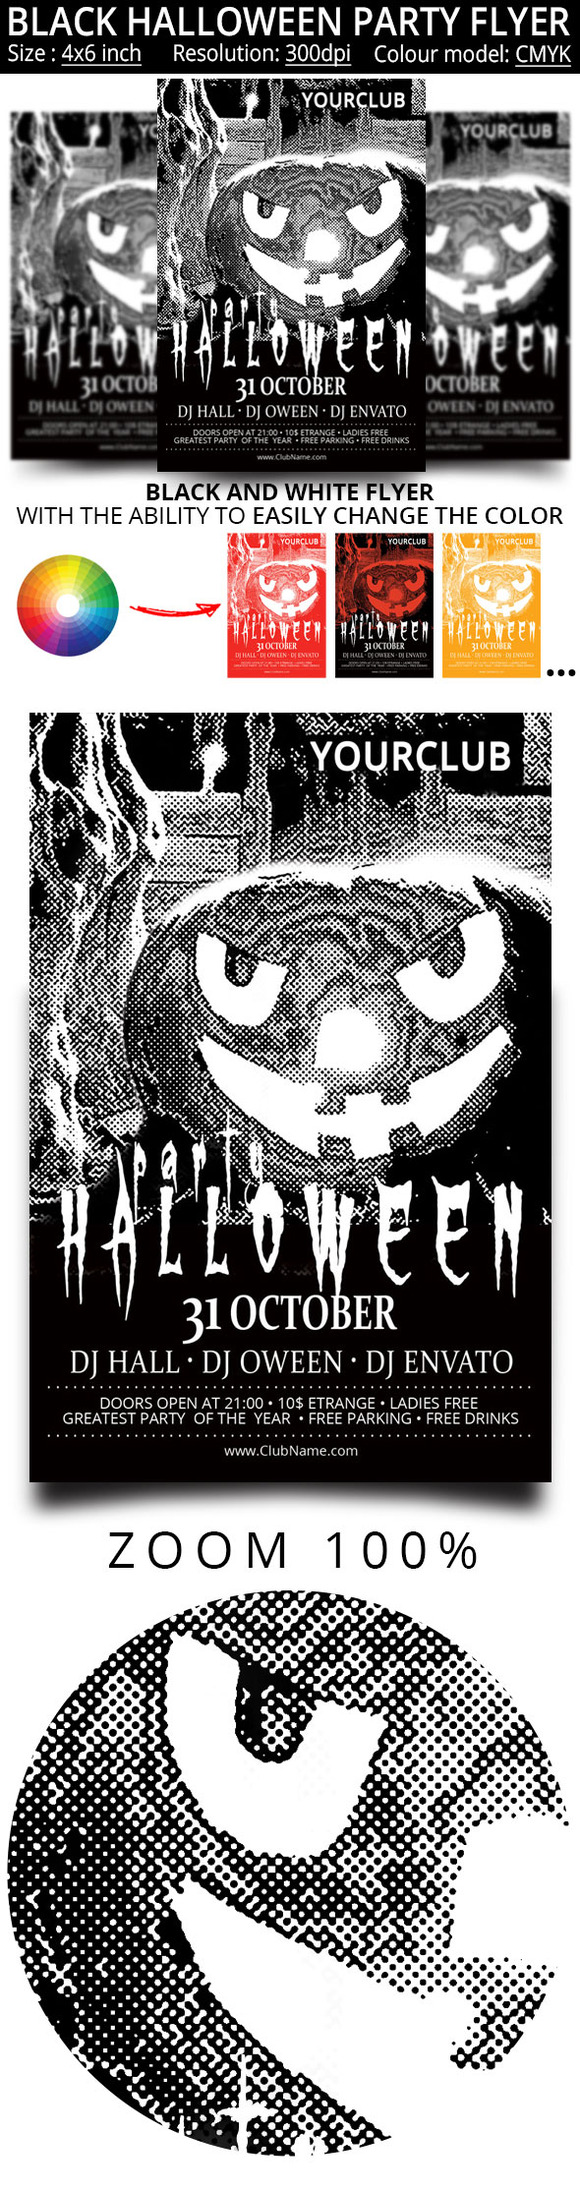 black and white flyer for the hallow